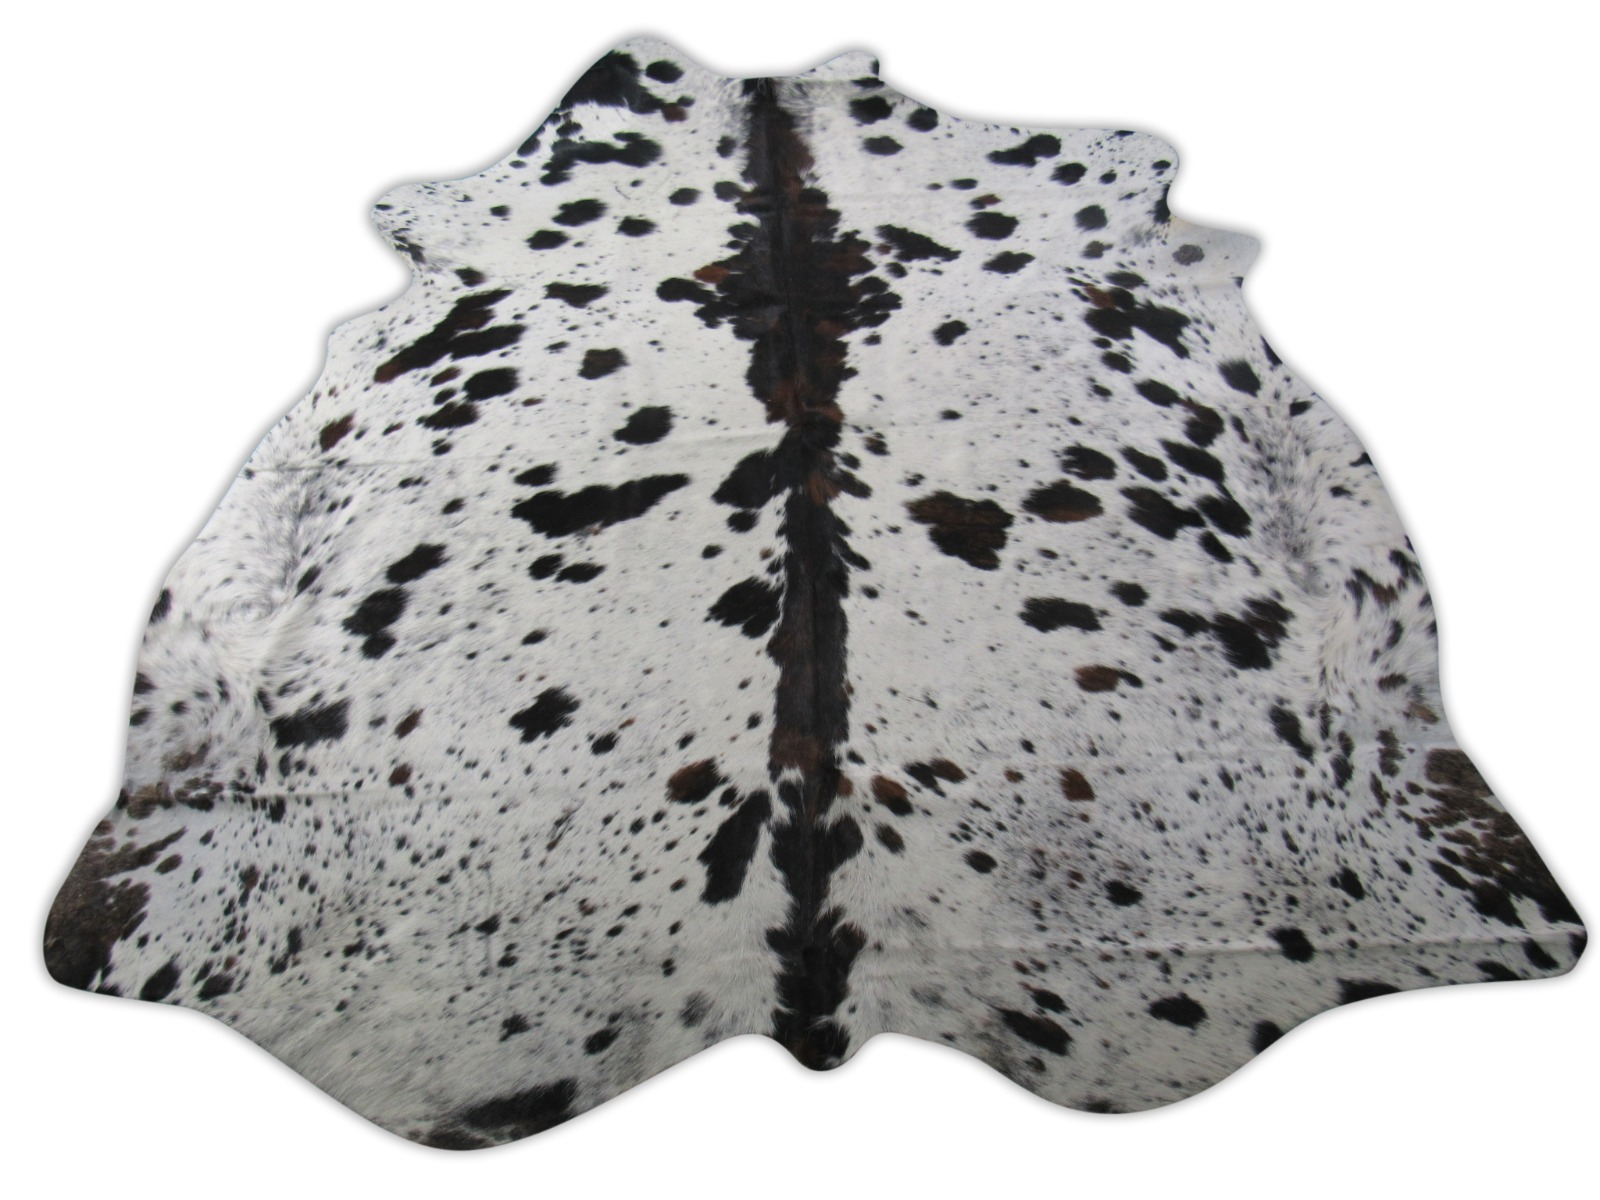 A-1570 Tricolor Speckled Cowhide Rug Size: 7 1/4' X 7 1/4'